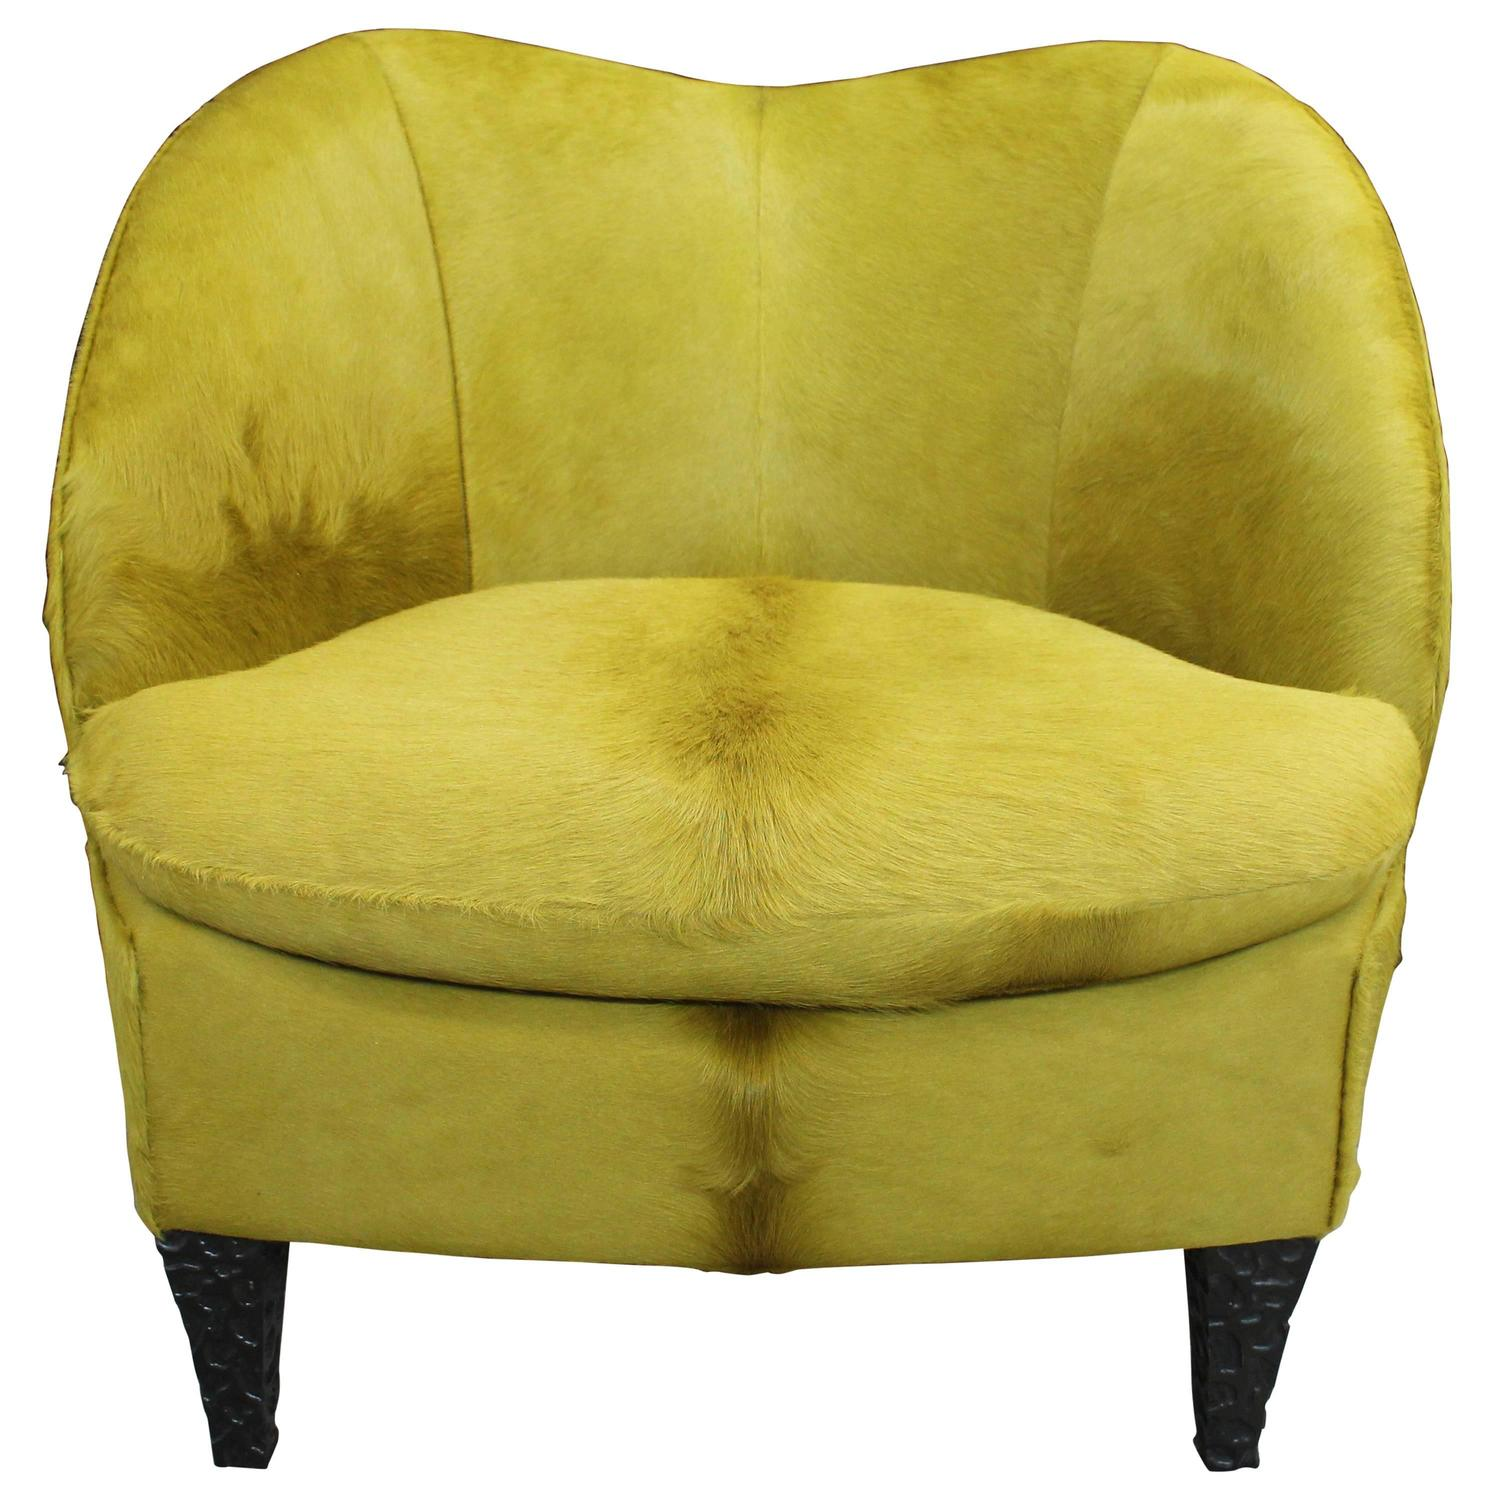 Chic Modern Club Chair in Chartreuse Hair on Hide For Sale at 1stdibs